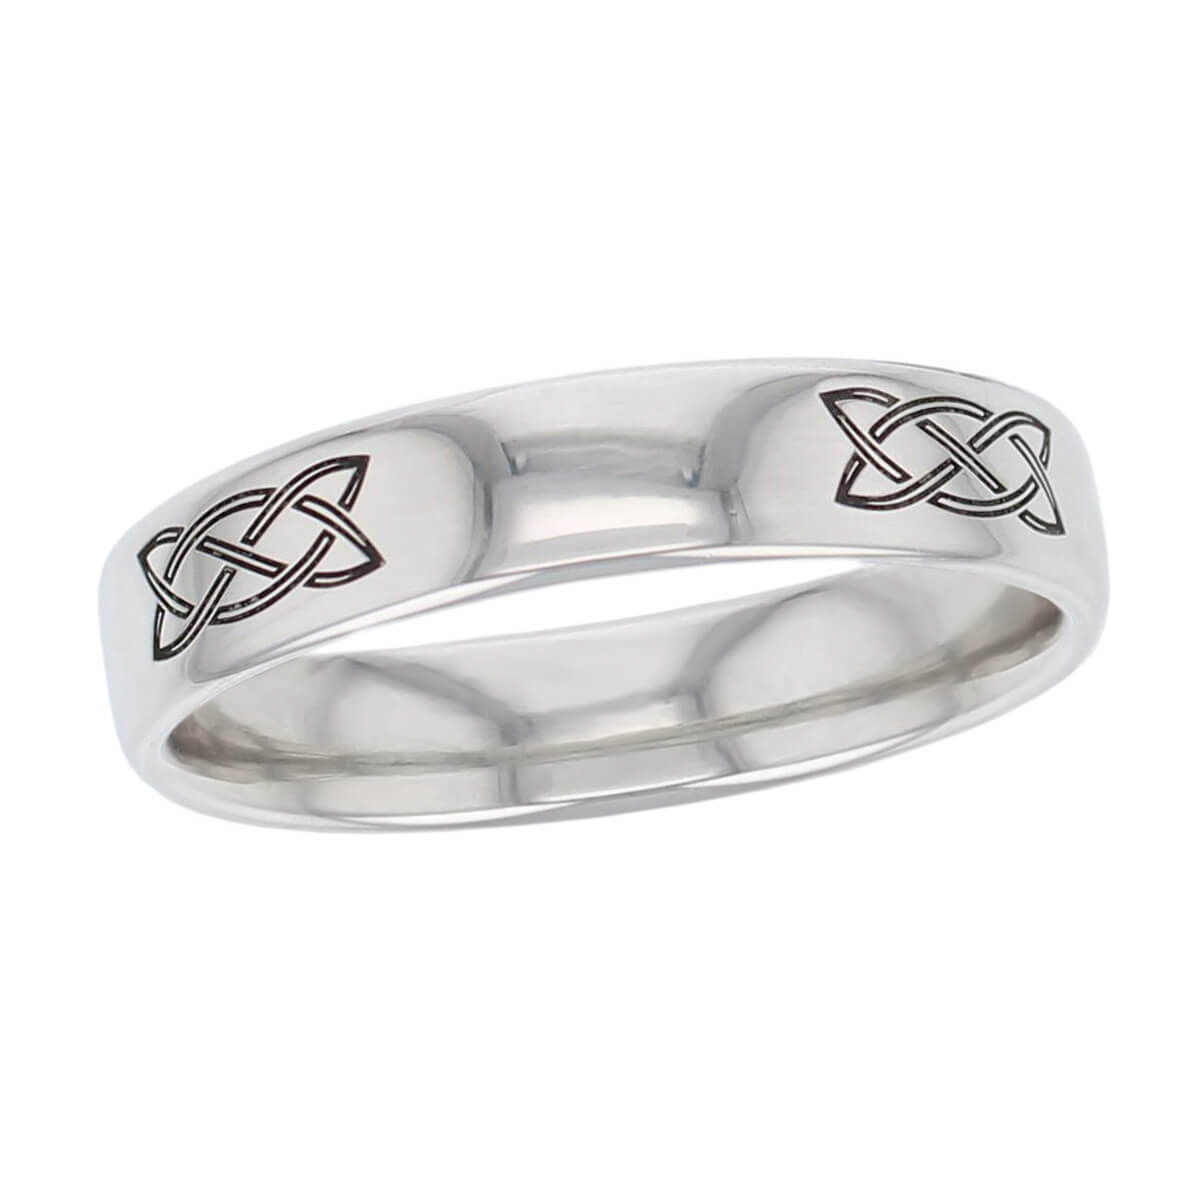 celtic knot wedding ring pattern, men's, gents, woven pattern, Irish, made by Faller, platinum